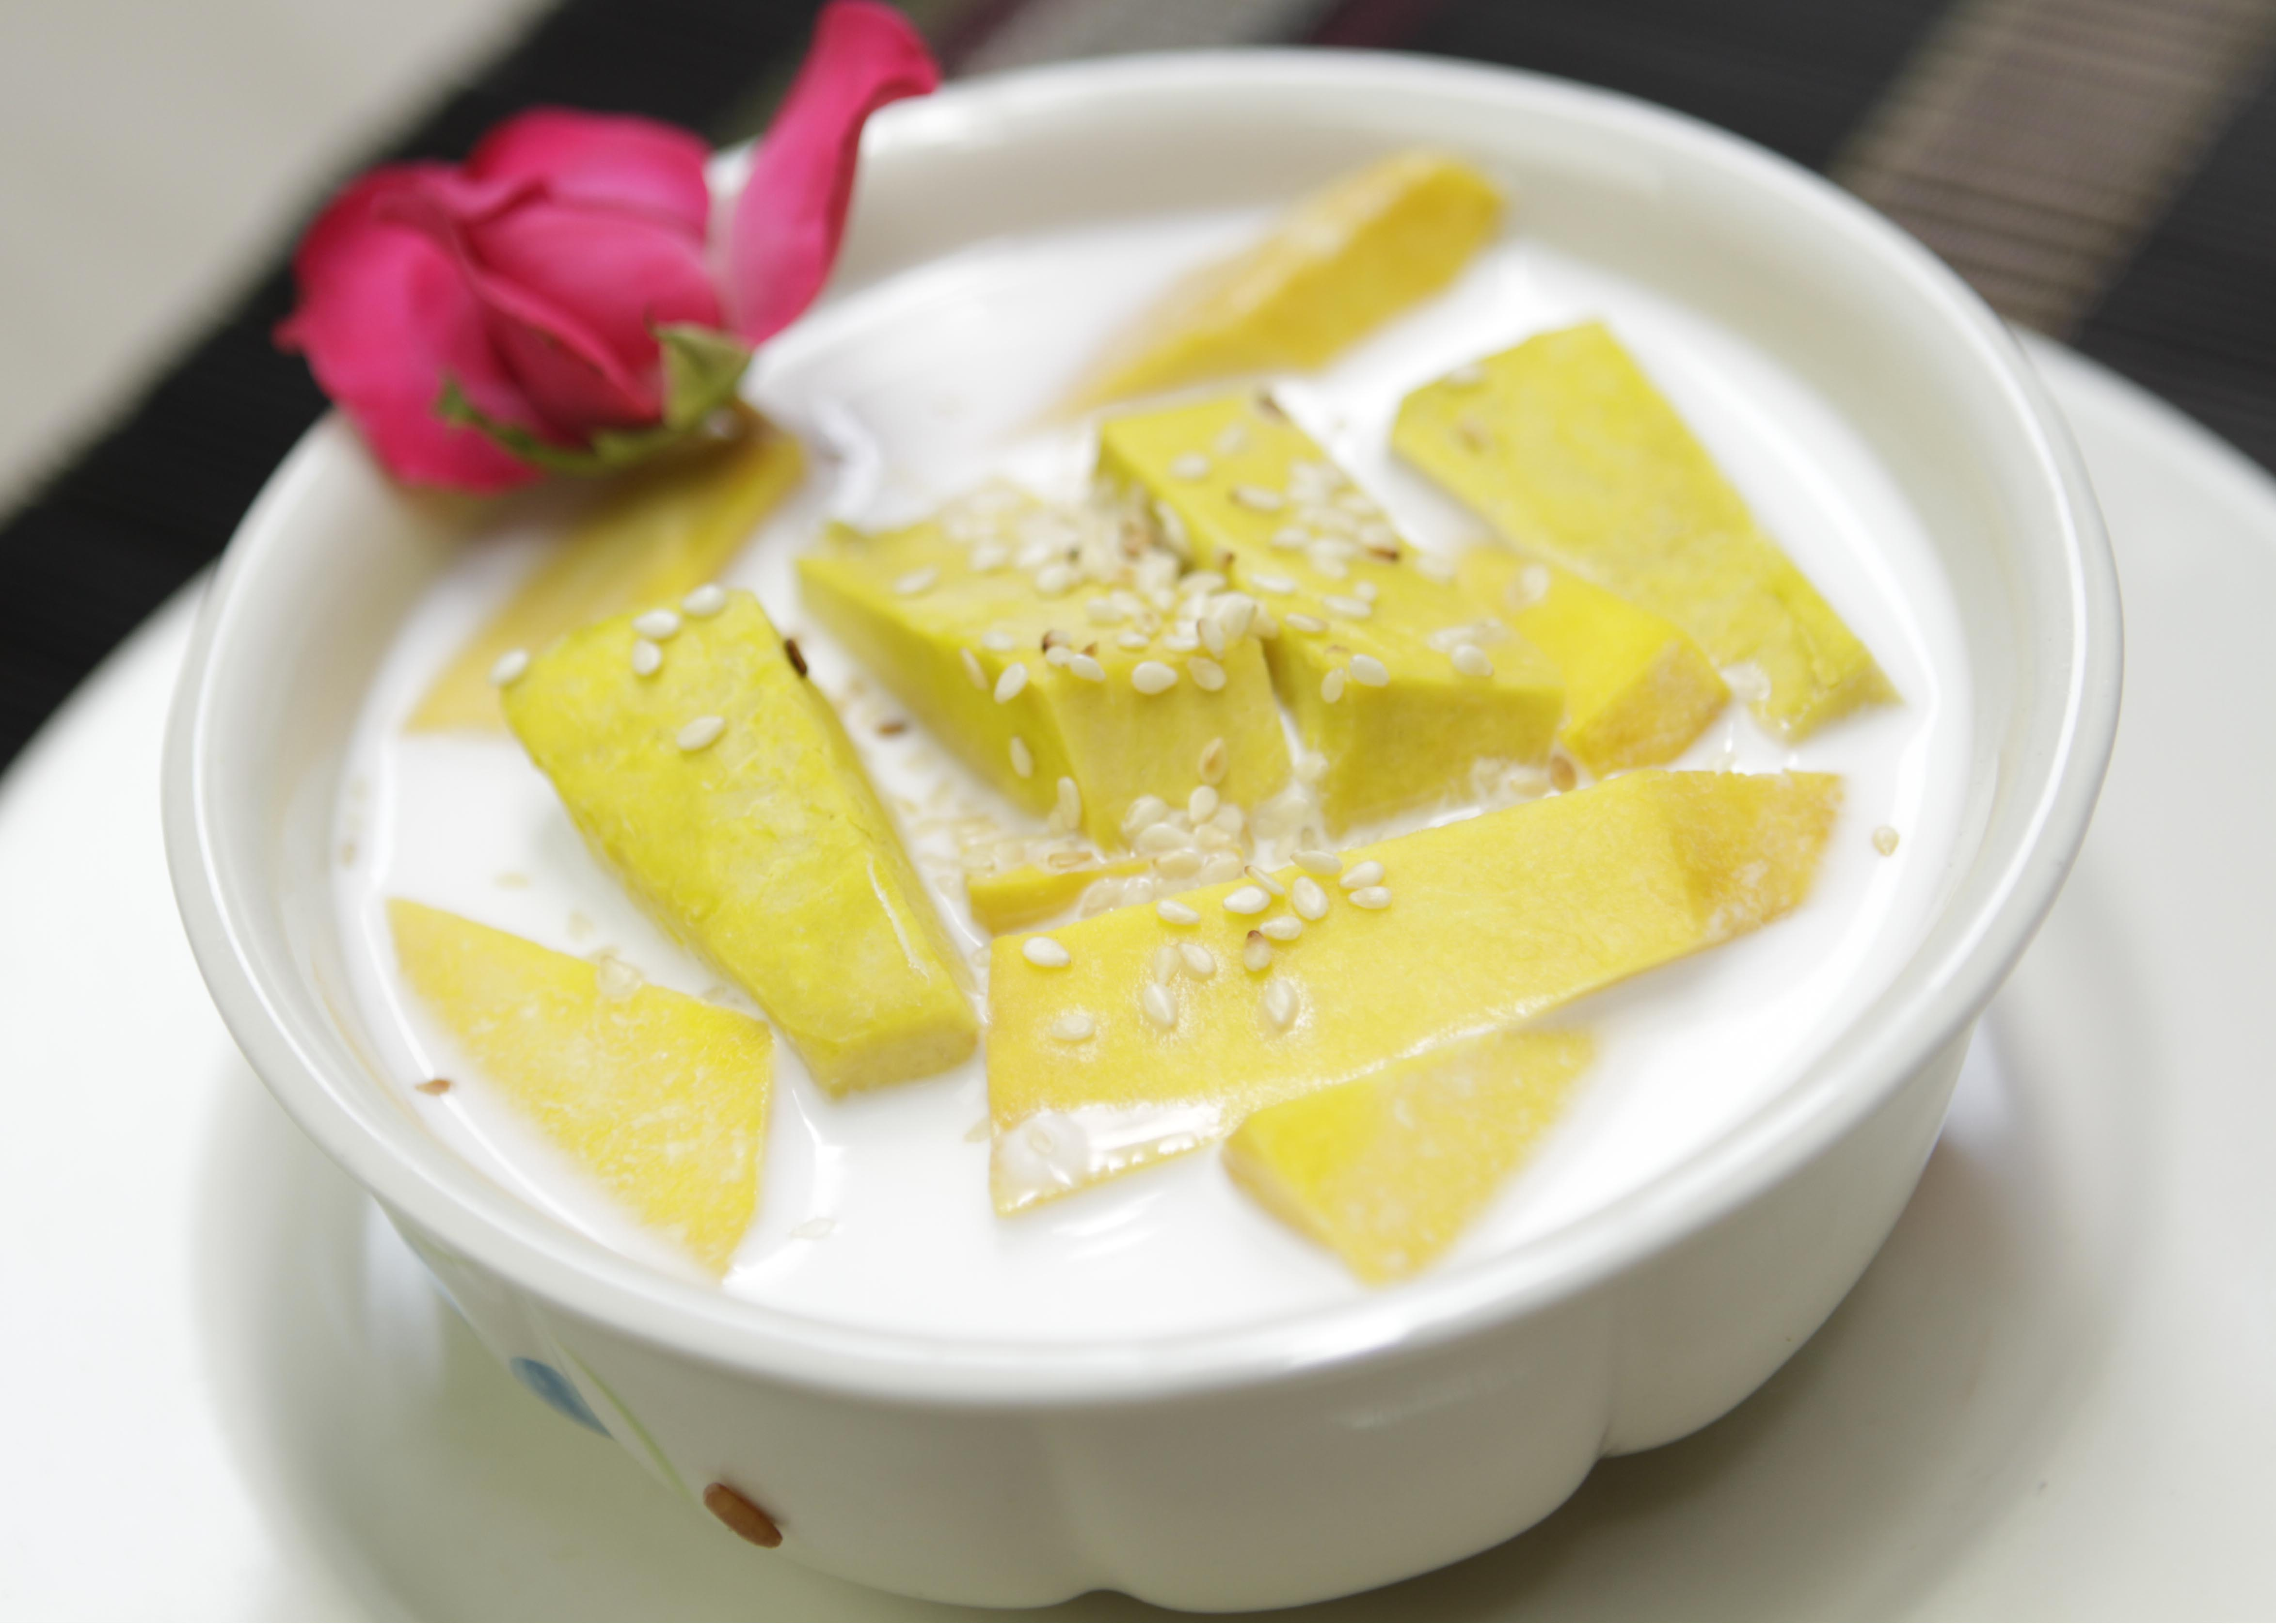 Steamed pumpkin slices in sweet coconut milk dessert, topped with sesame seeds and a pink rose as garnish.